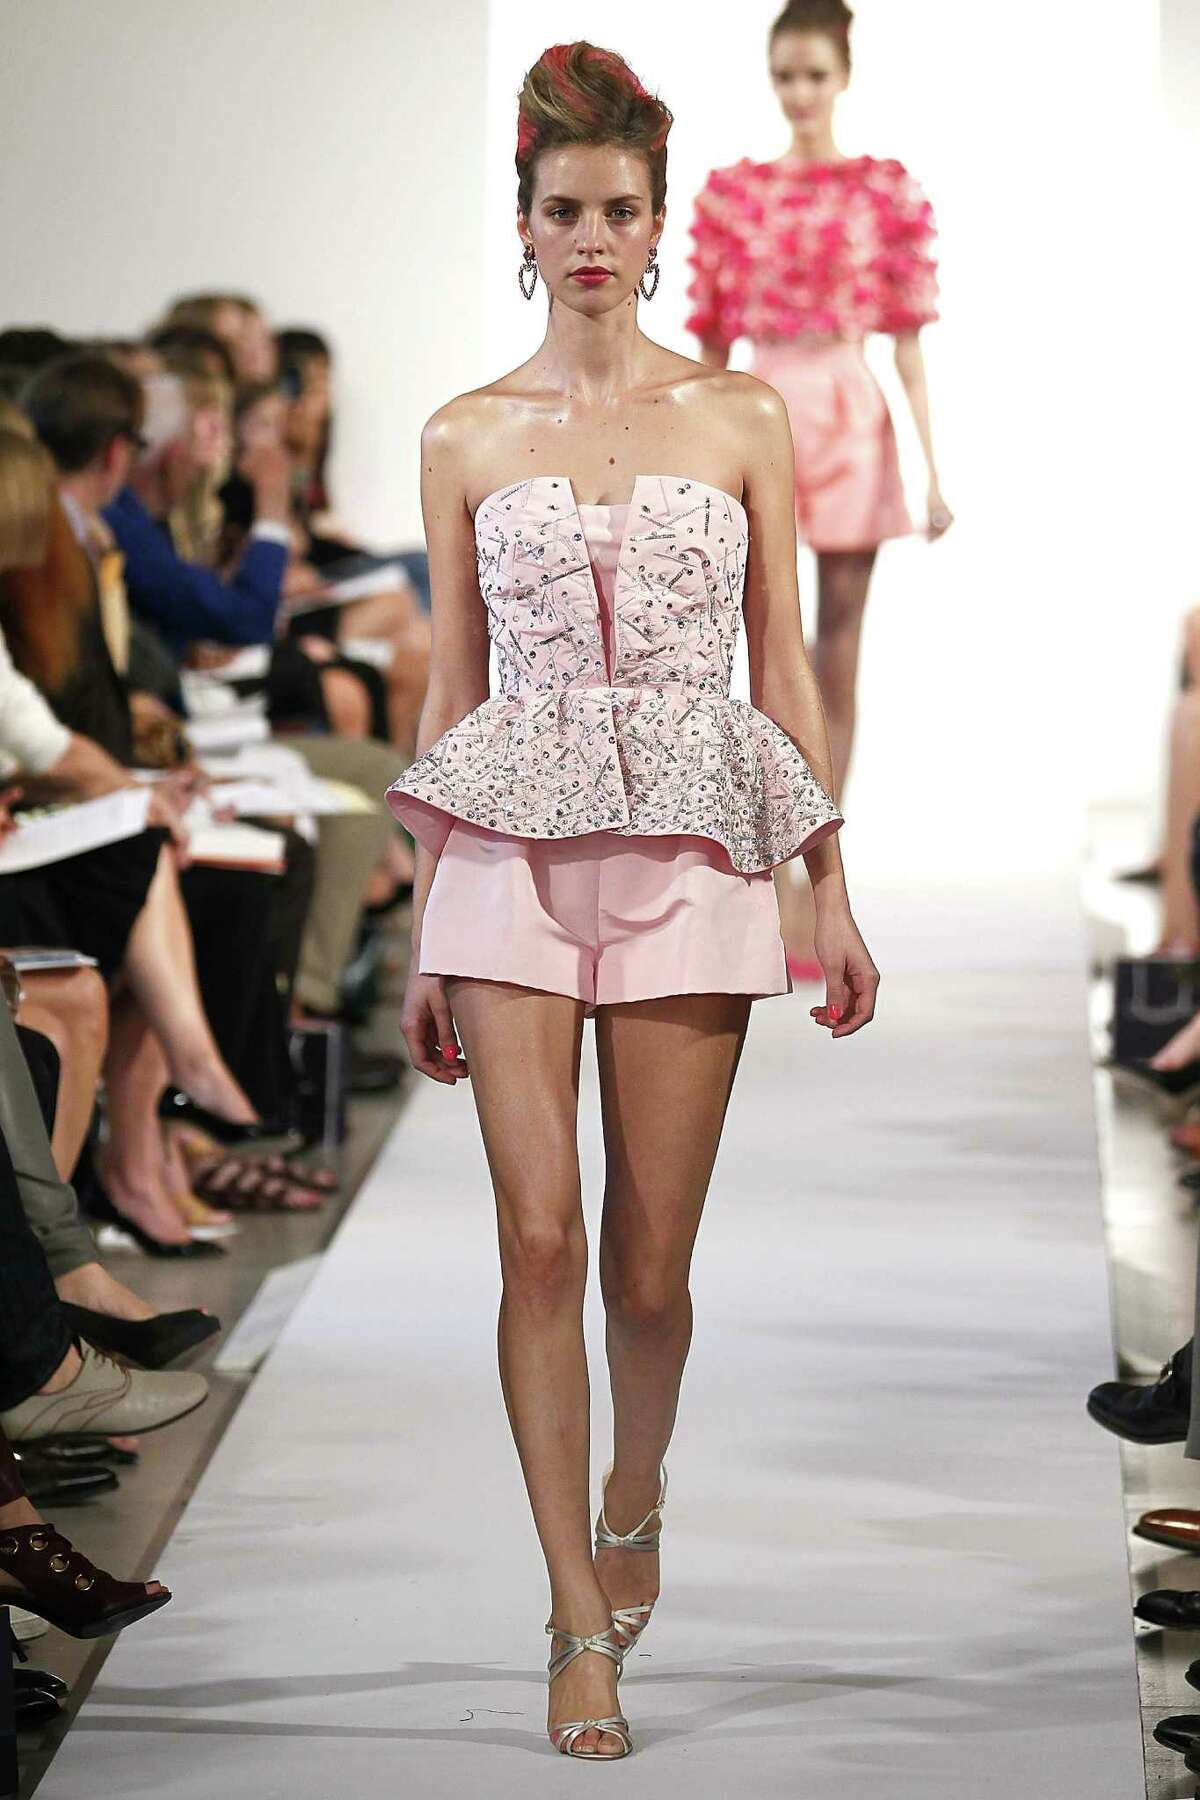 Oscar de la Renta offers flared cocktail shorts with a corset top.